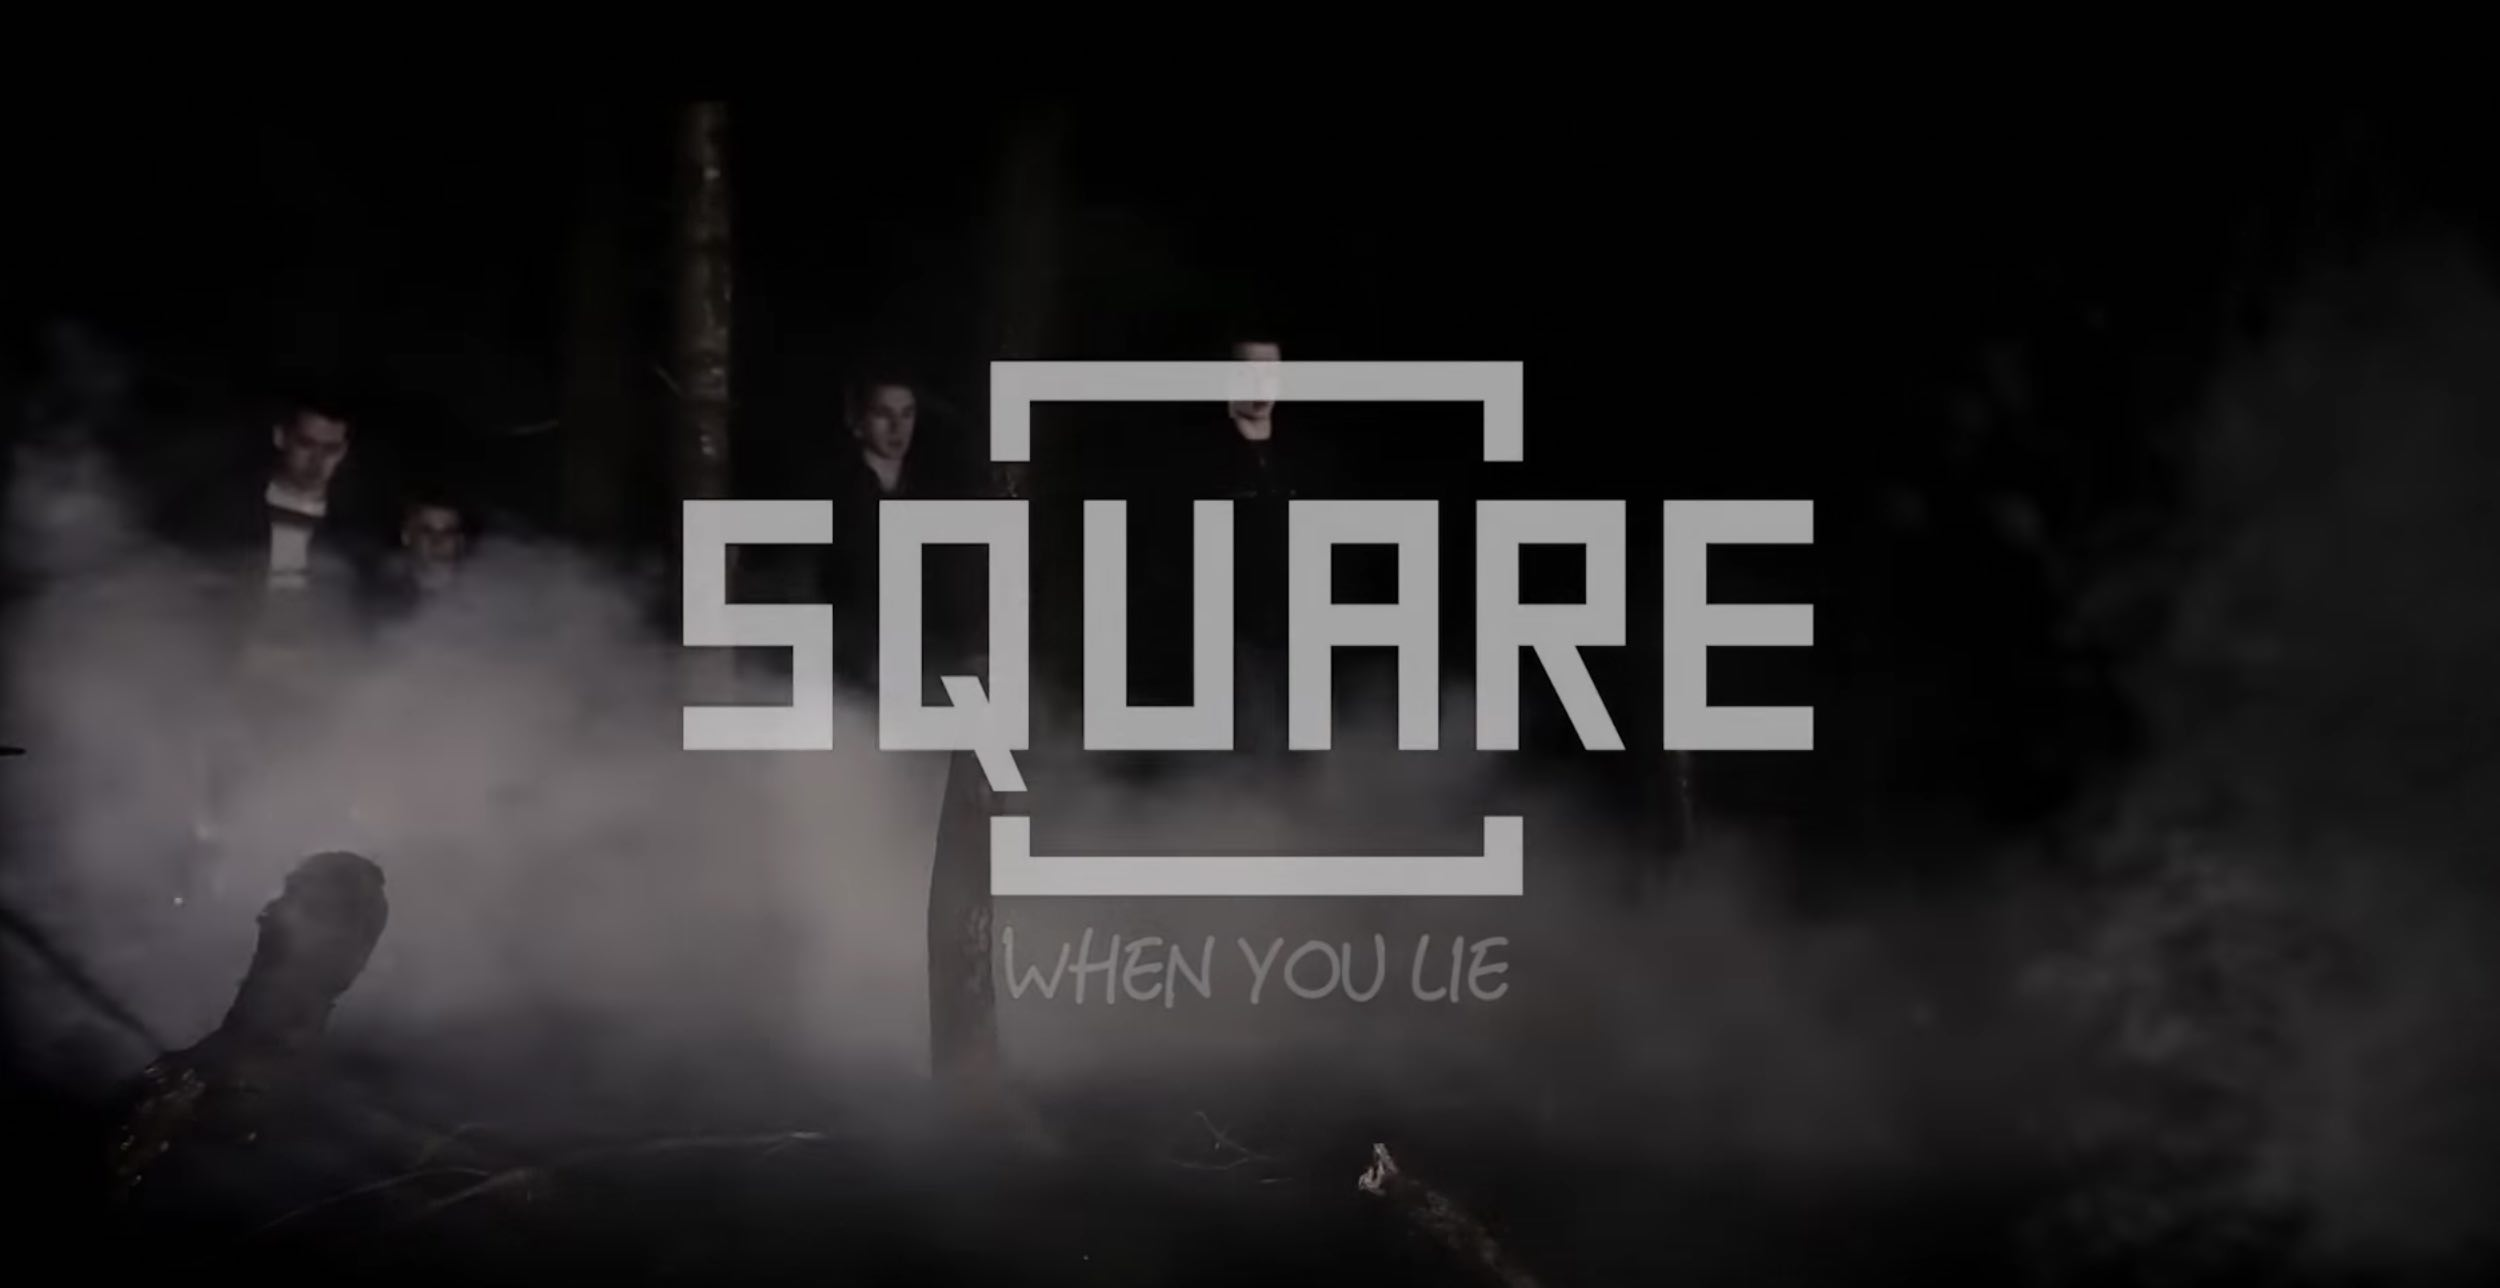 Square – When you lie